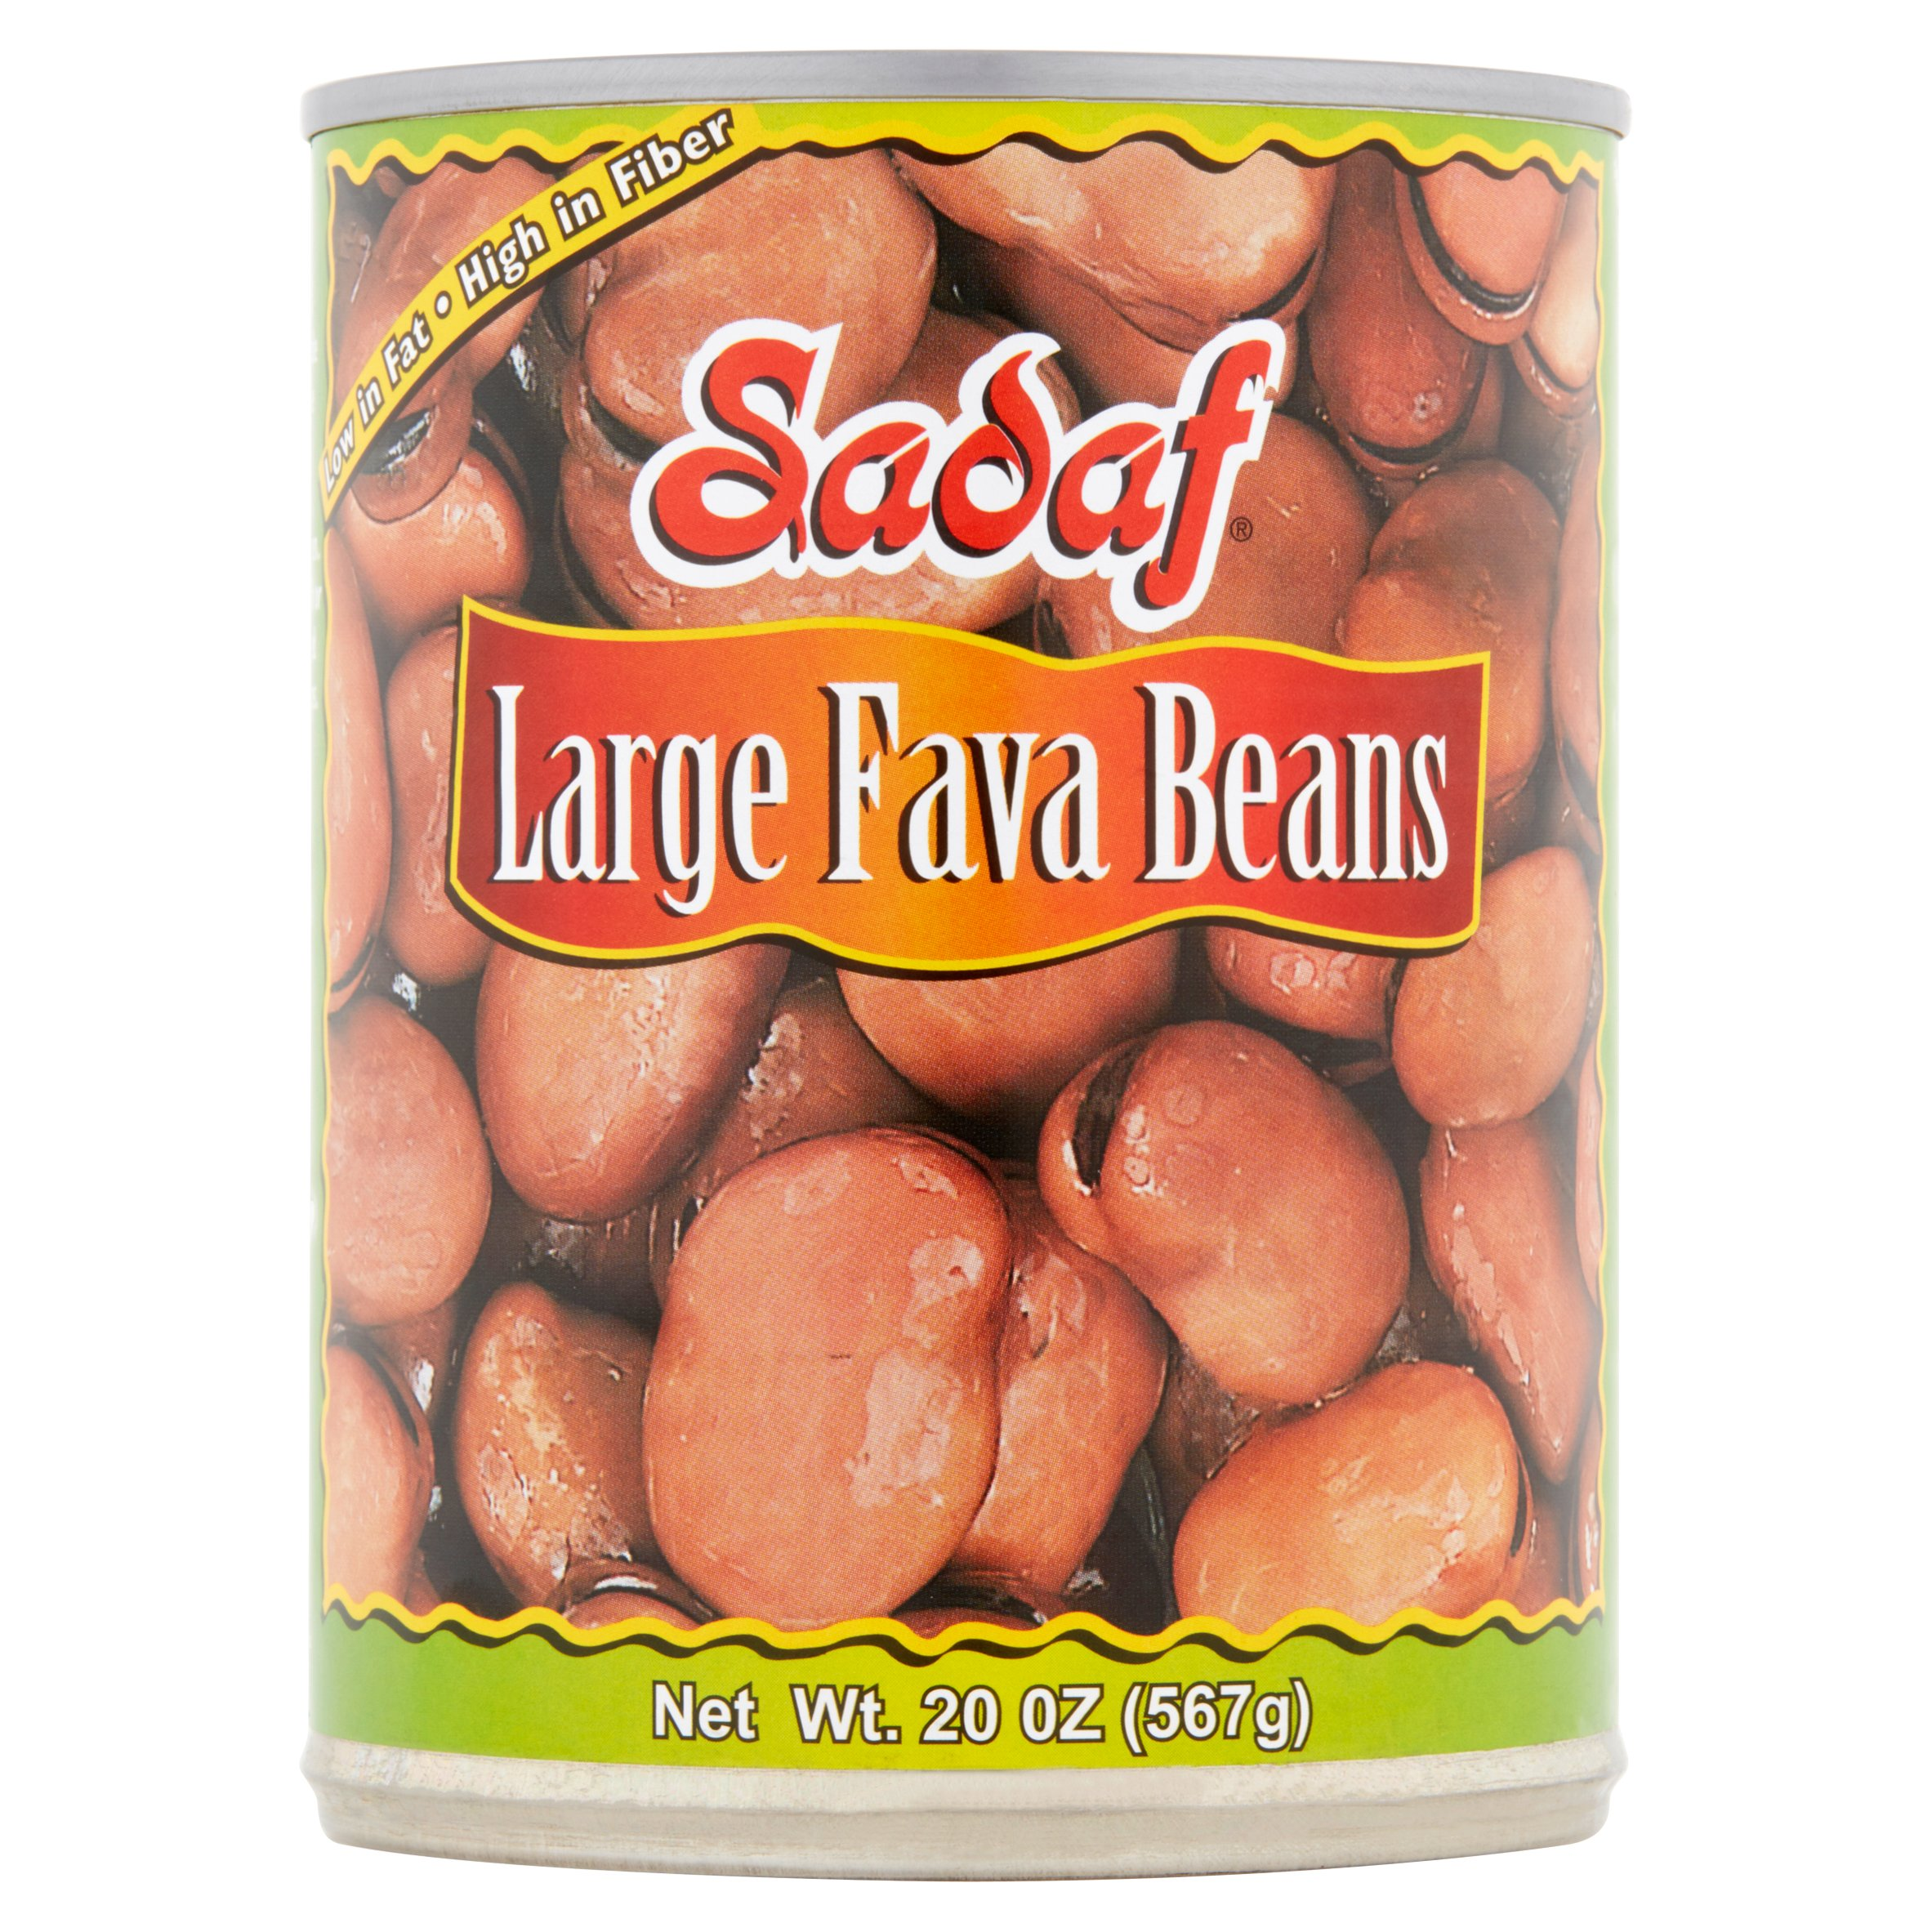 (6 Pack) Sadaf Large Fava Beans, 20 Oz